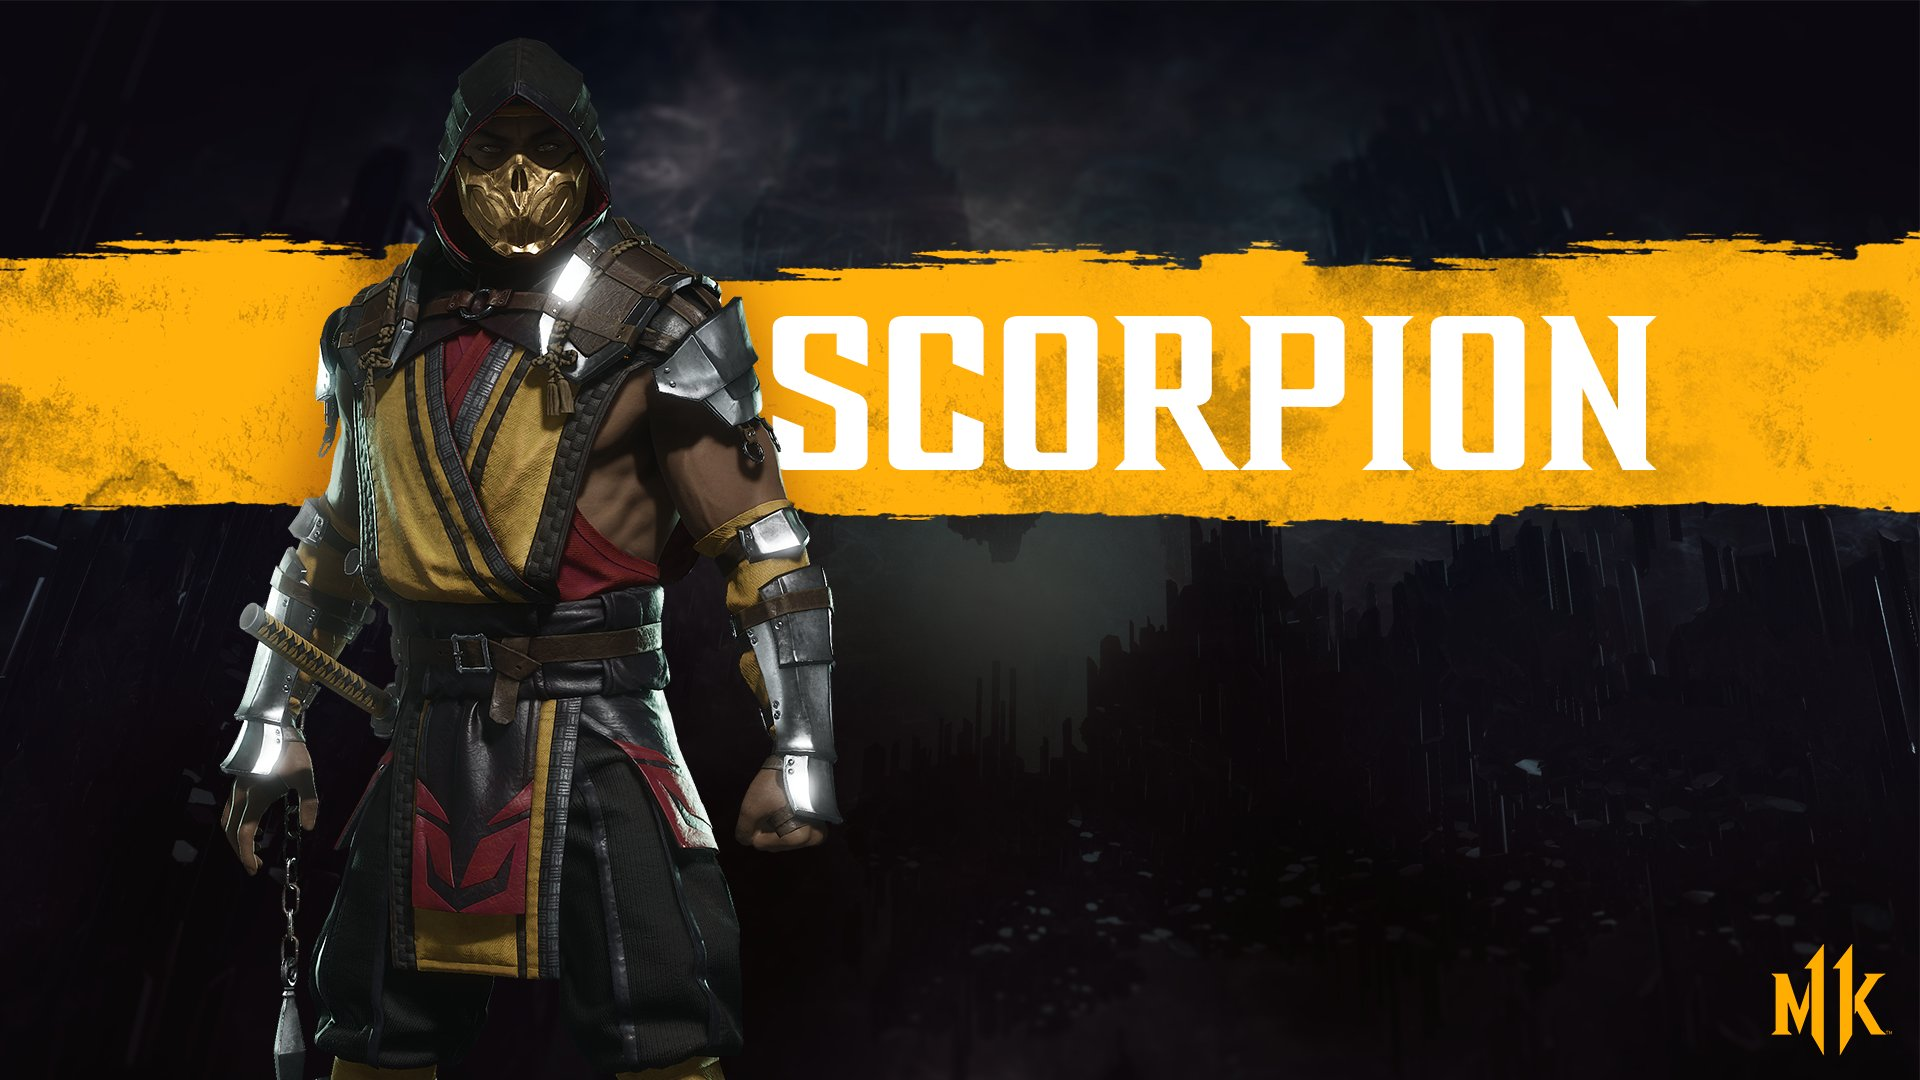 Mortal Kombat 11 wallpaper - Scorpion